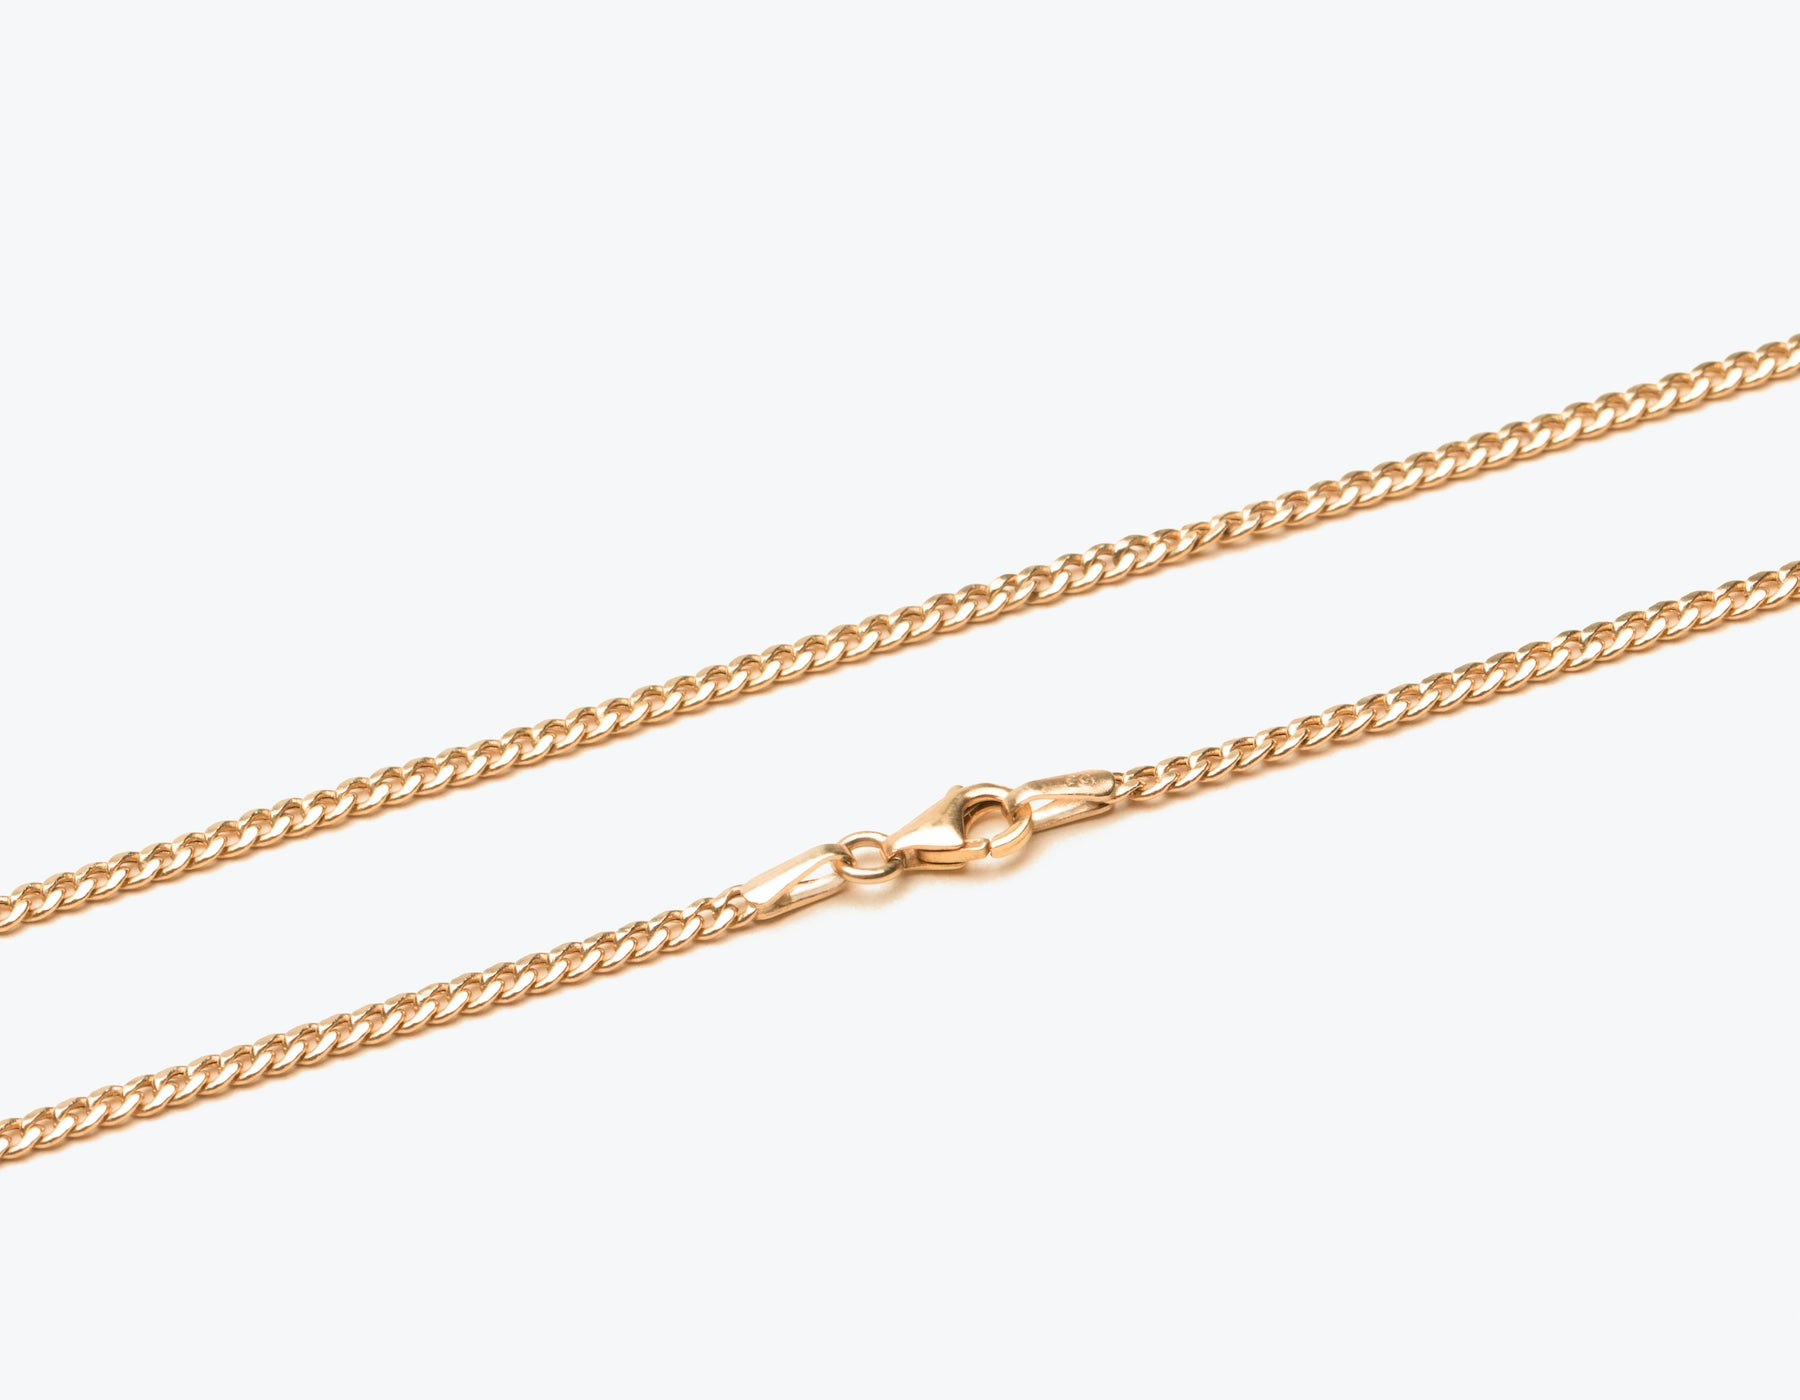 Simple classic 14k solid gold Cuban Link Chain necklace with lobster clasp by Vrai & Oro sustainable jewelry, 14K Rose Gold